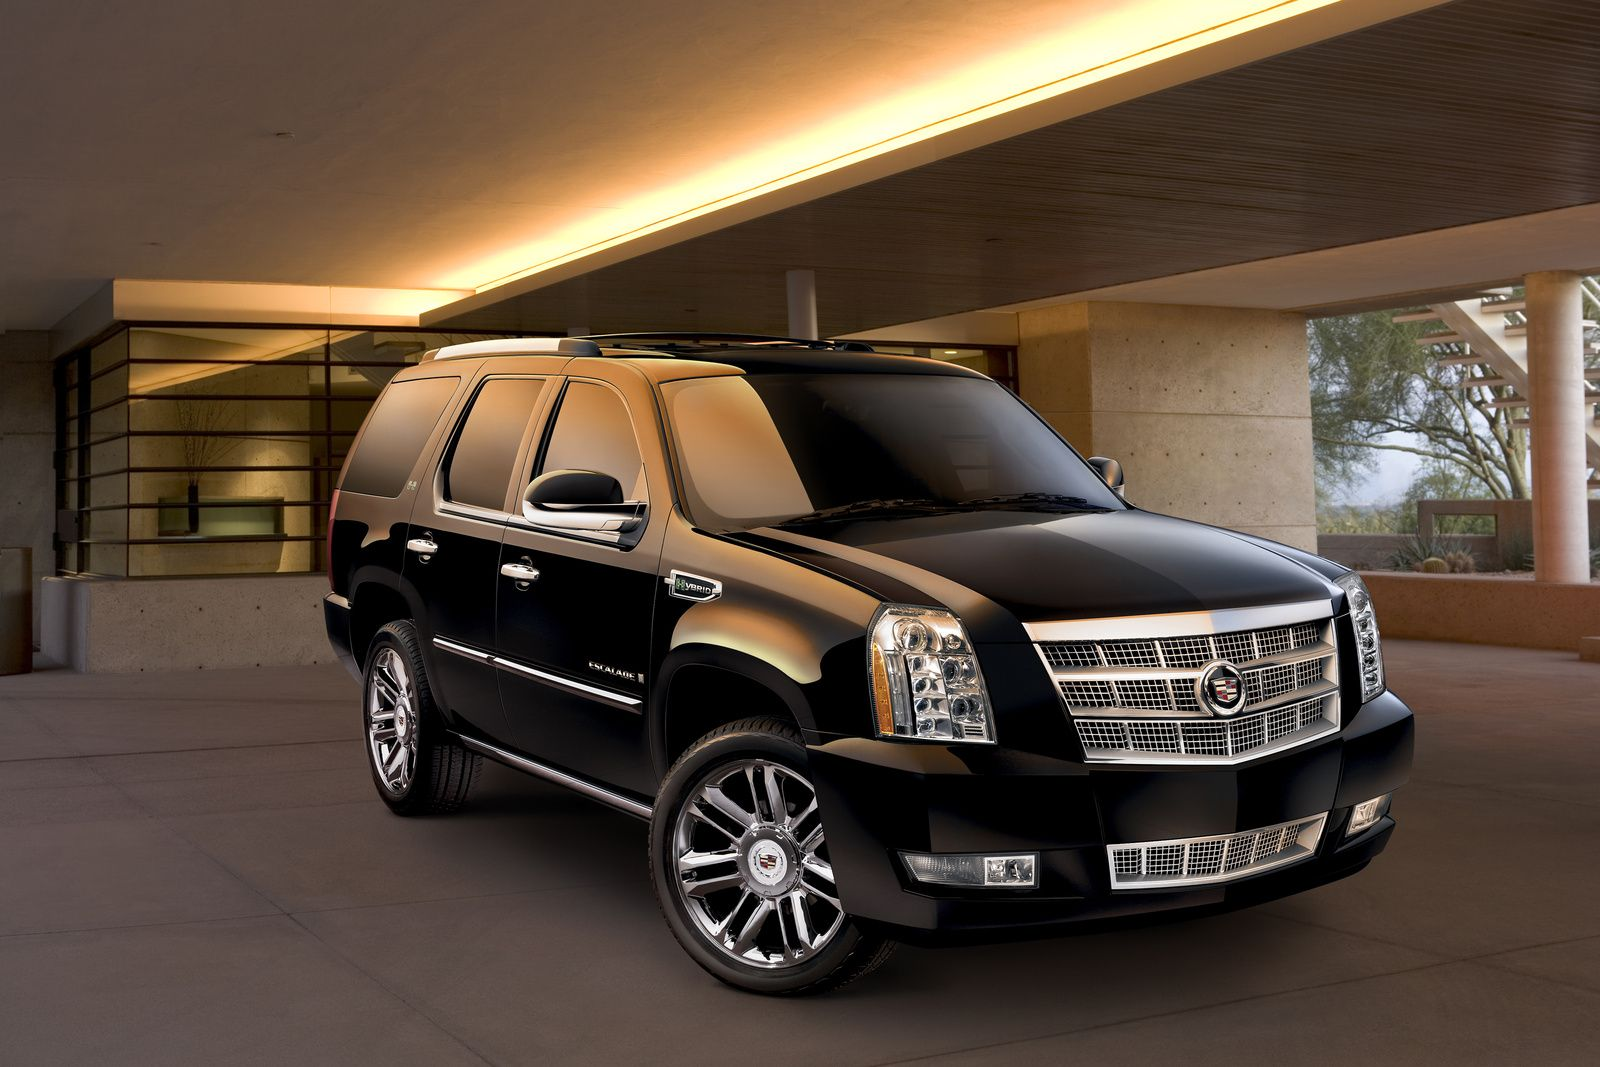 2011 cadillac escalade luxury suv car for my large family